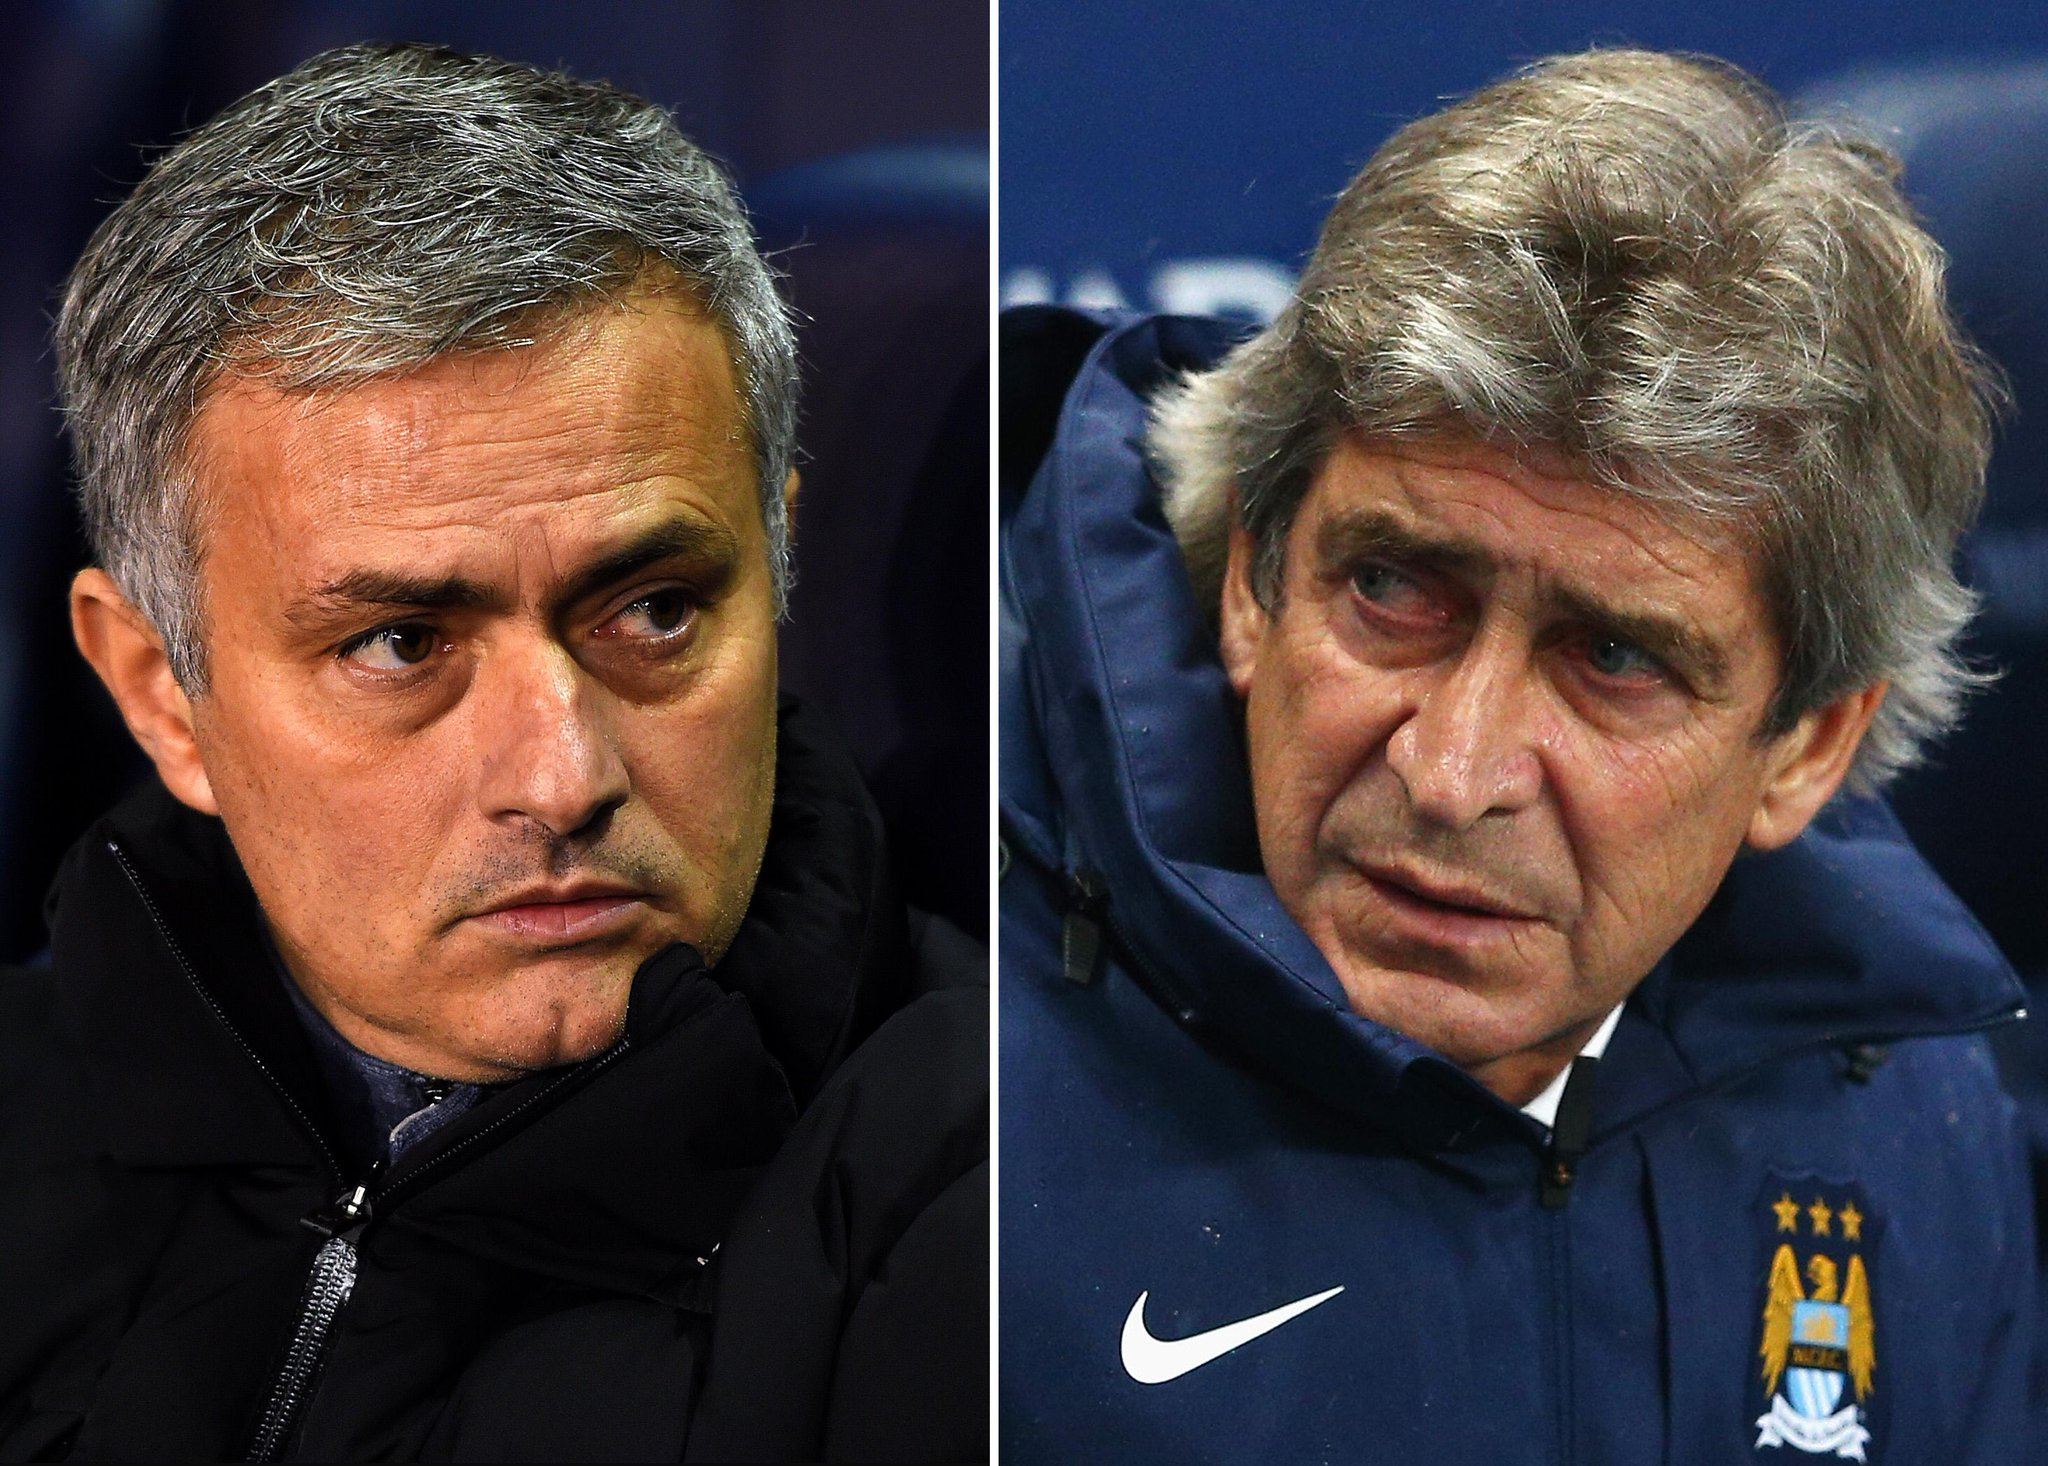 RT @BBCSport: Read why - despite their weaknesses - @RobbieSavage8 thinks #cfc will be too strong for #mcfc http://t.co/y3Y16mFEC1 http://t…